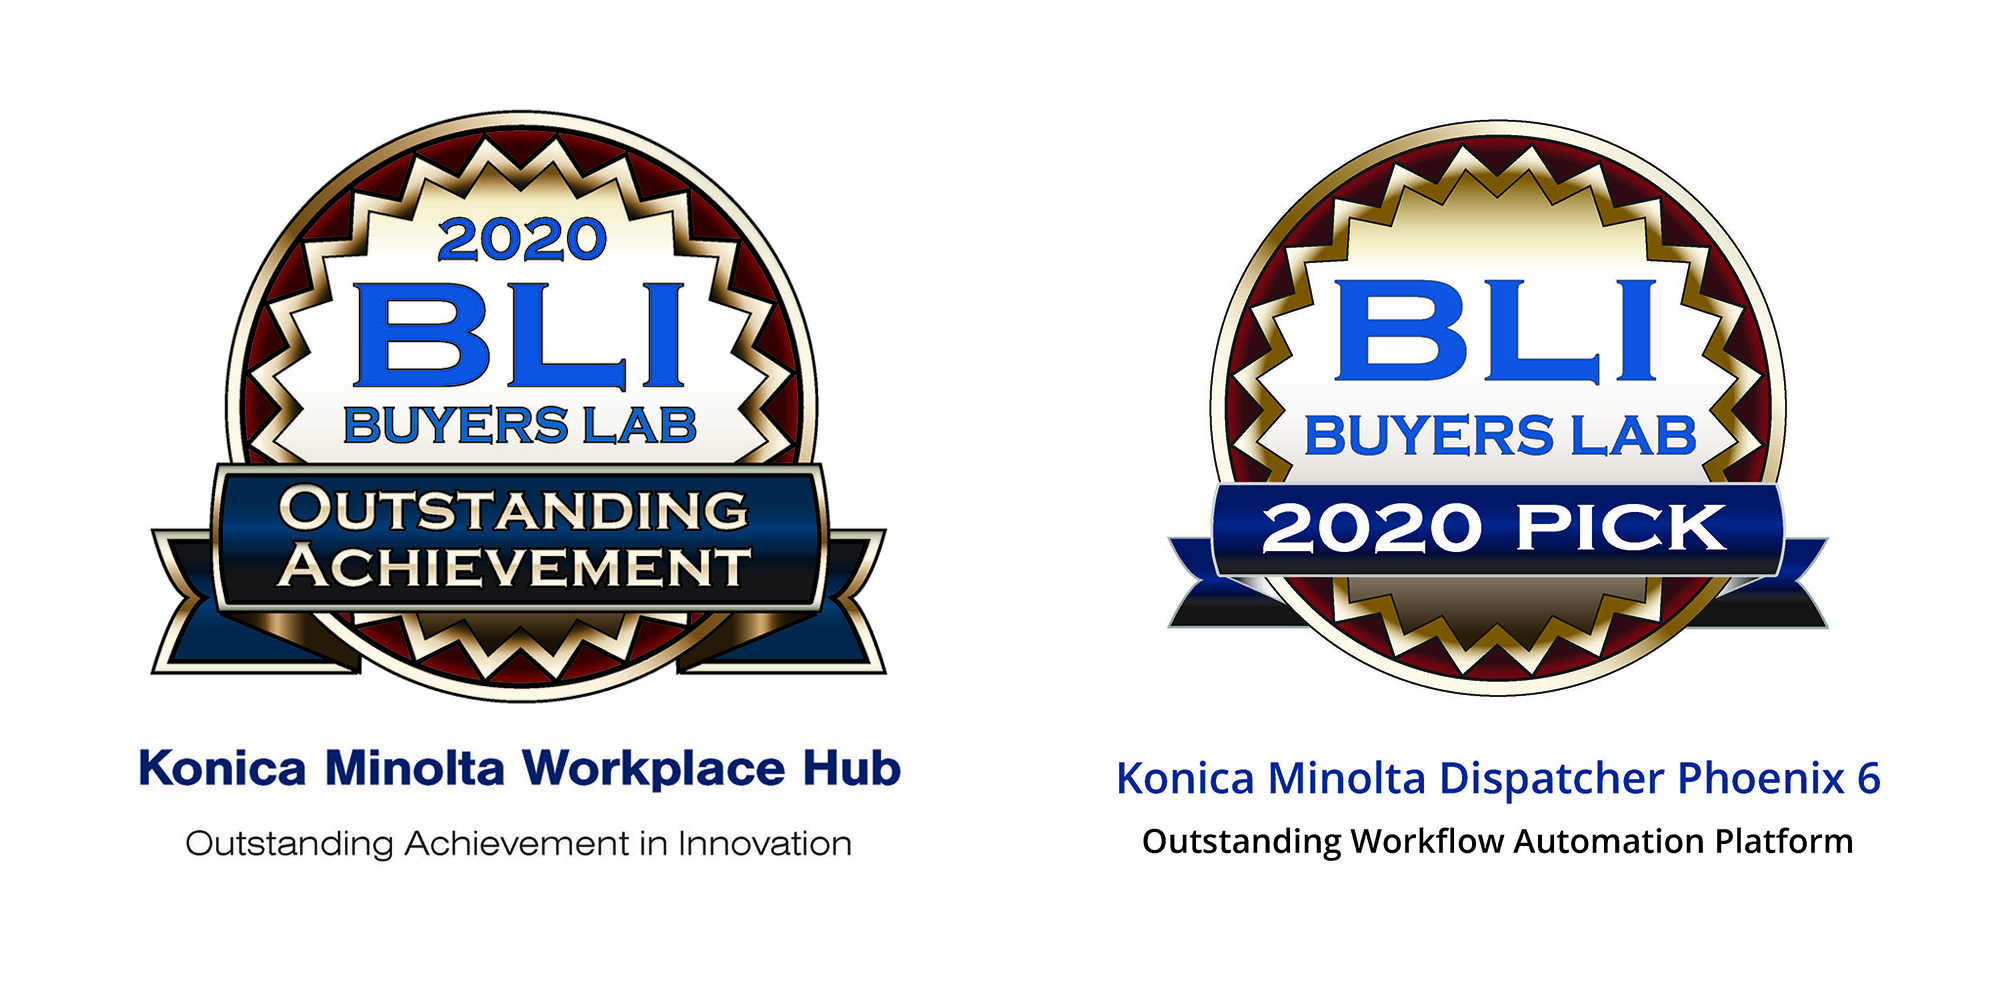 image of 2020 BLI badges for achievement in innovation and outstanding worflow automation platform